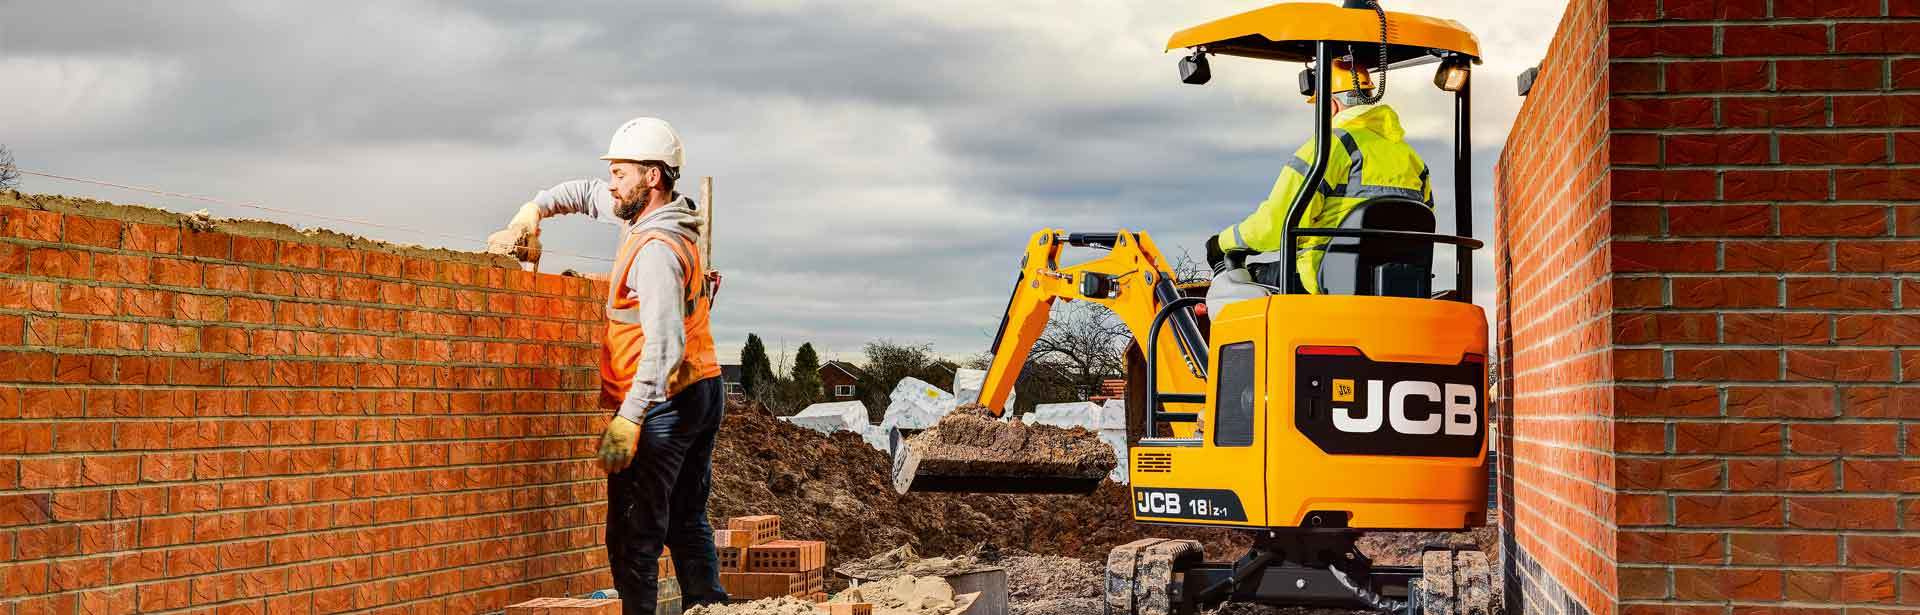 Image of a New Mini Excavator 1-2 Tonne Range